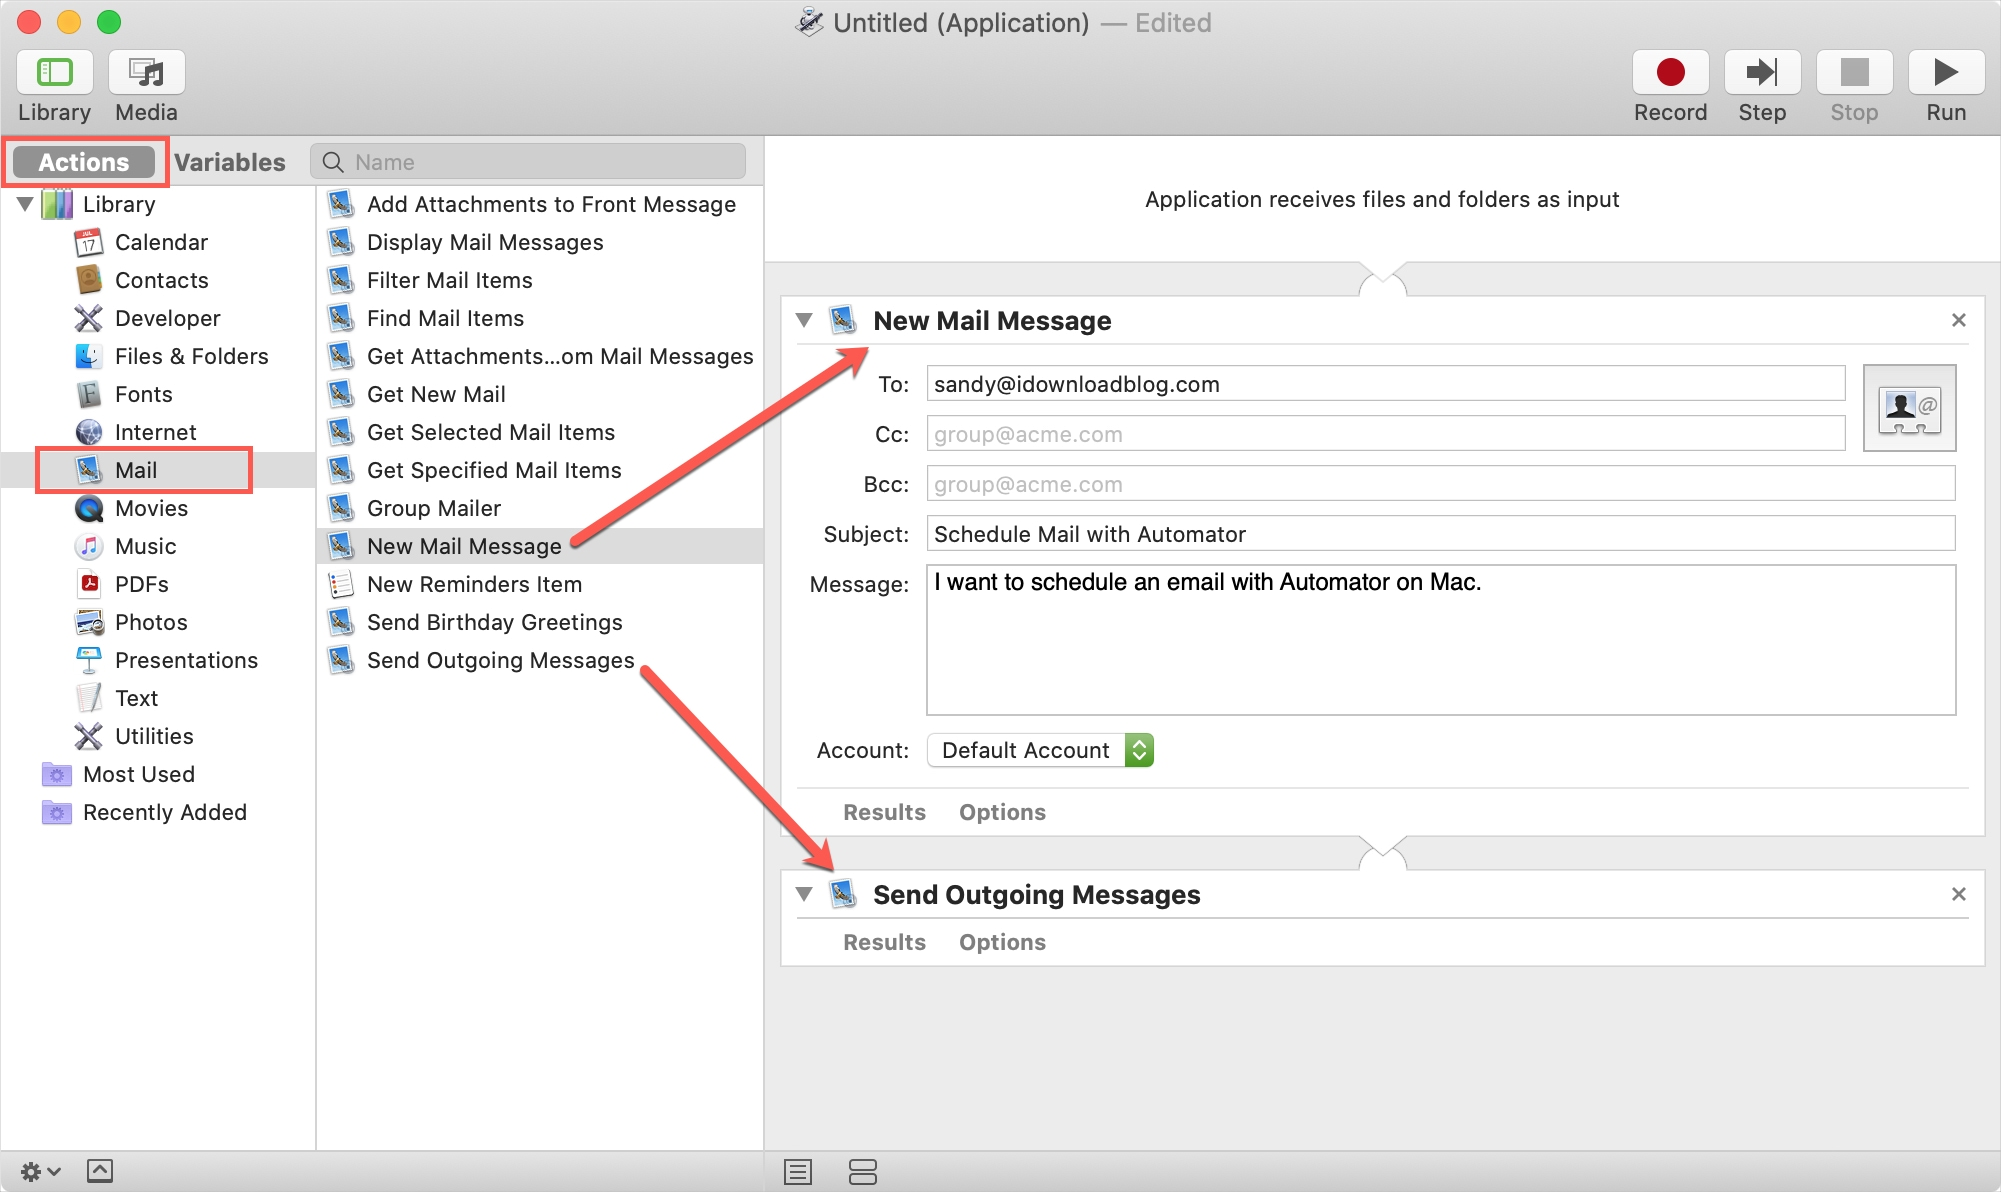 Automator New Mail Message and Send Outgoing Messages